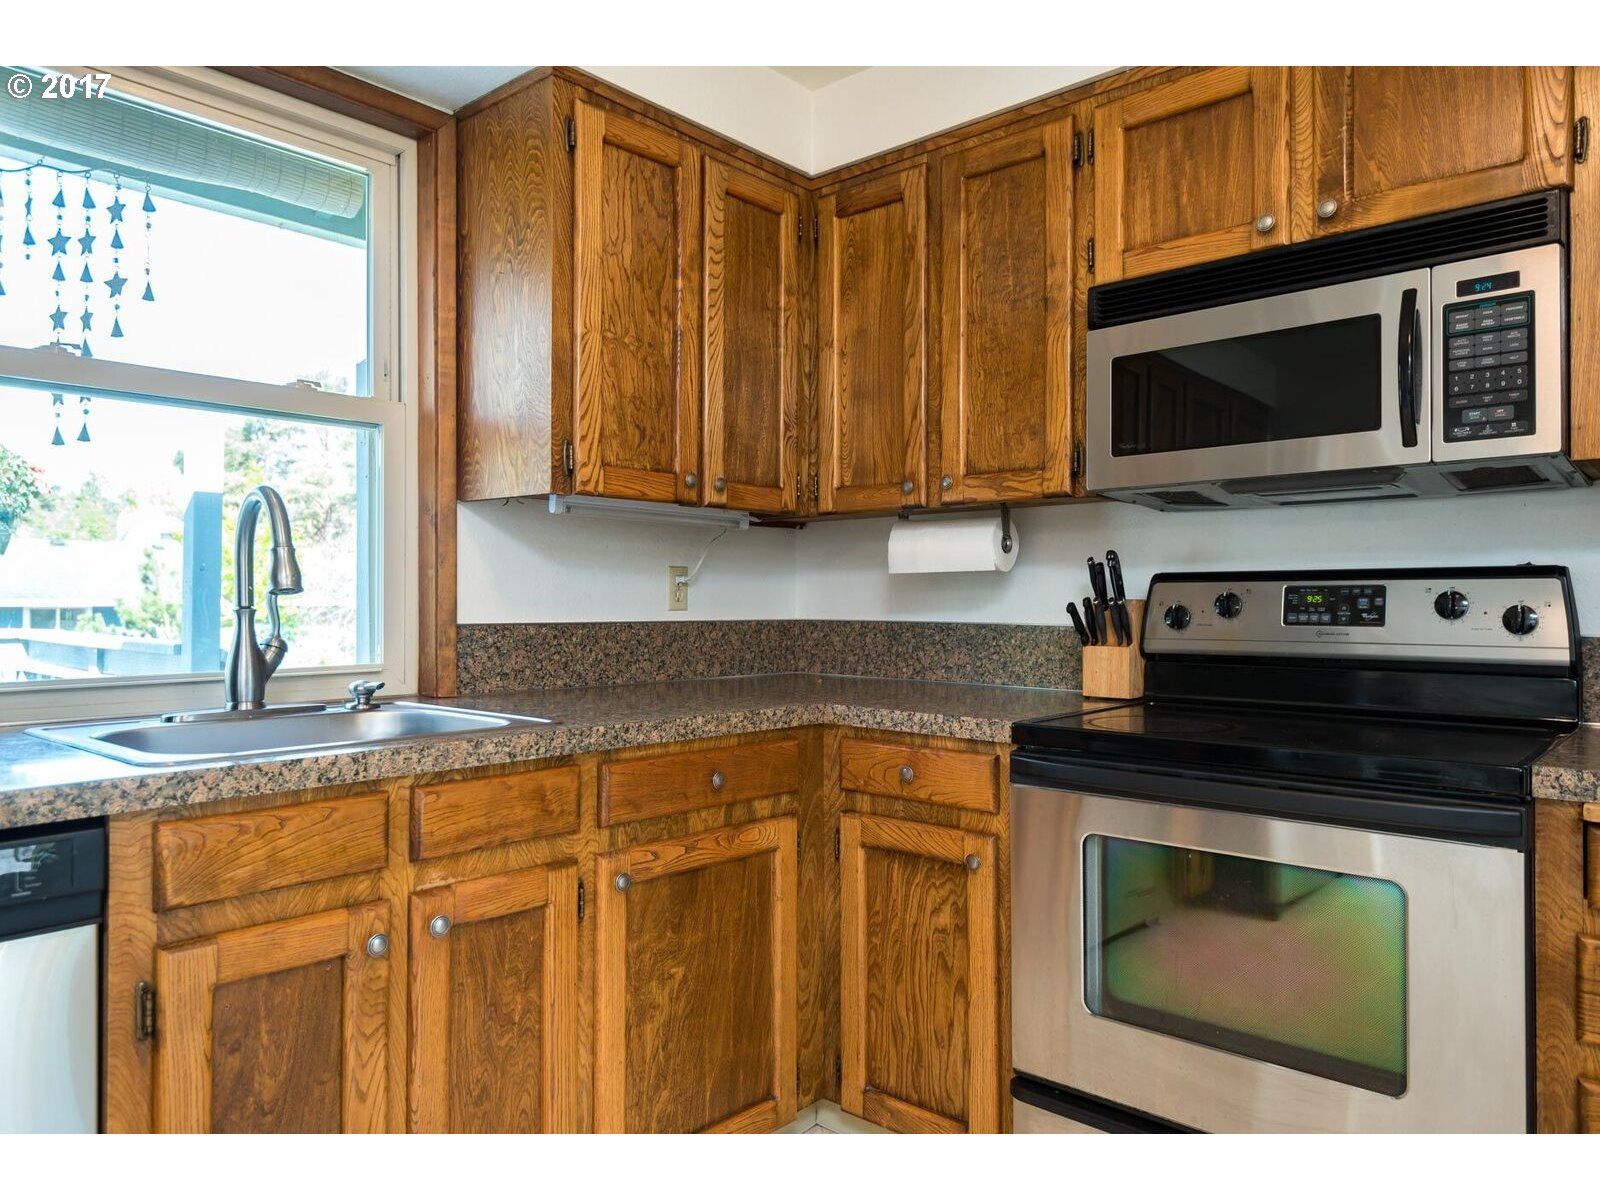 2339 SE KIBLING AVE Troutdale, OR 97060 - MLS #: 17690282